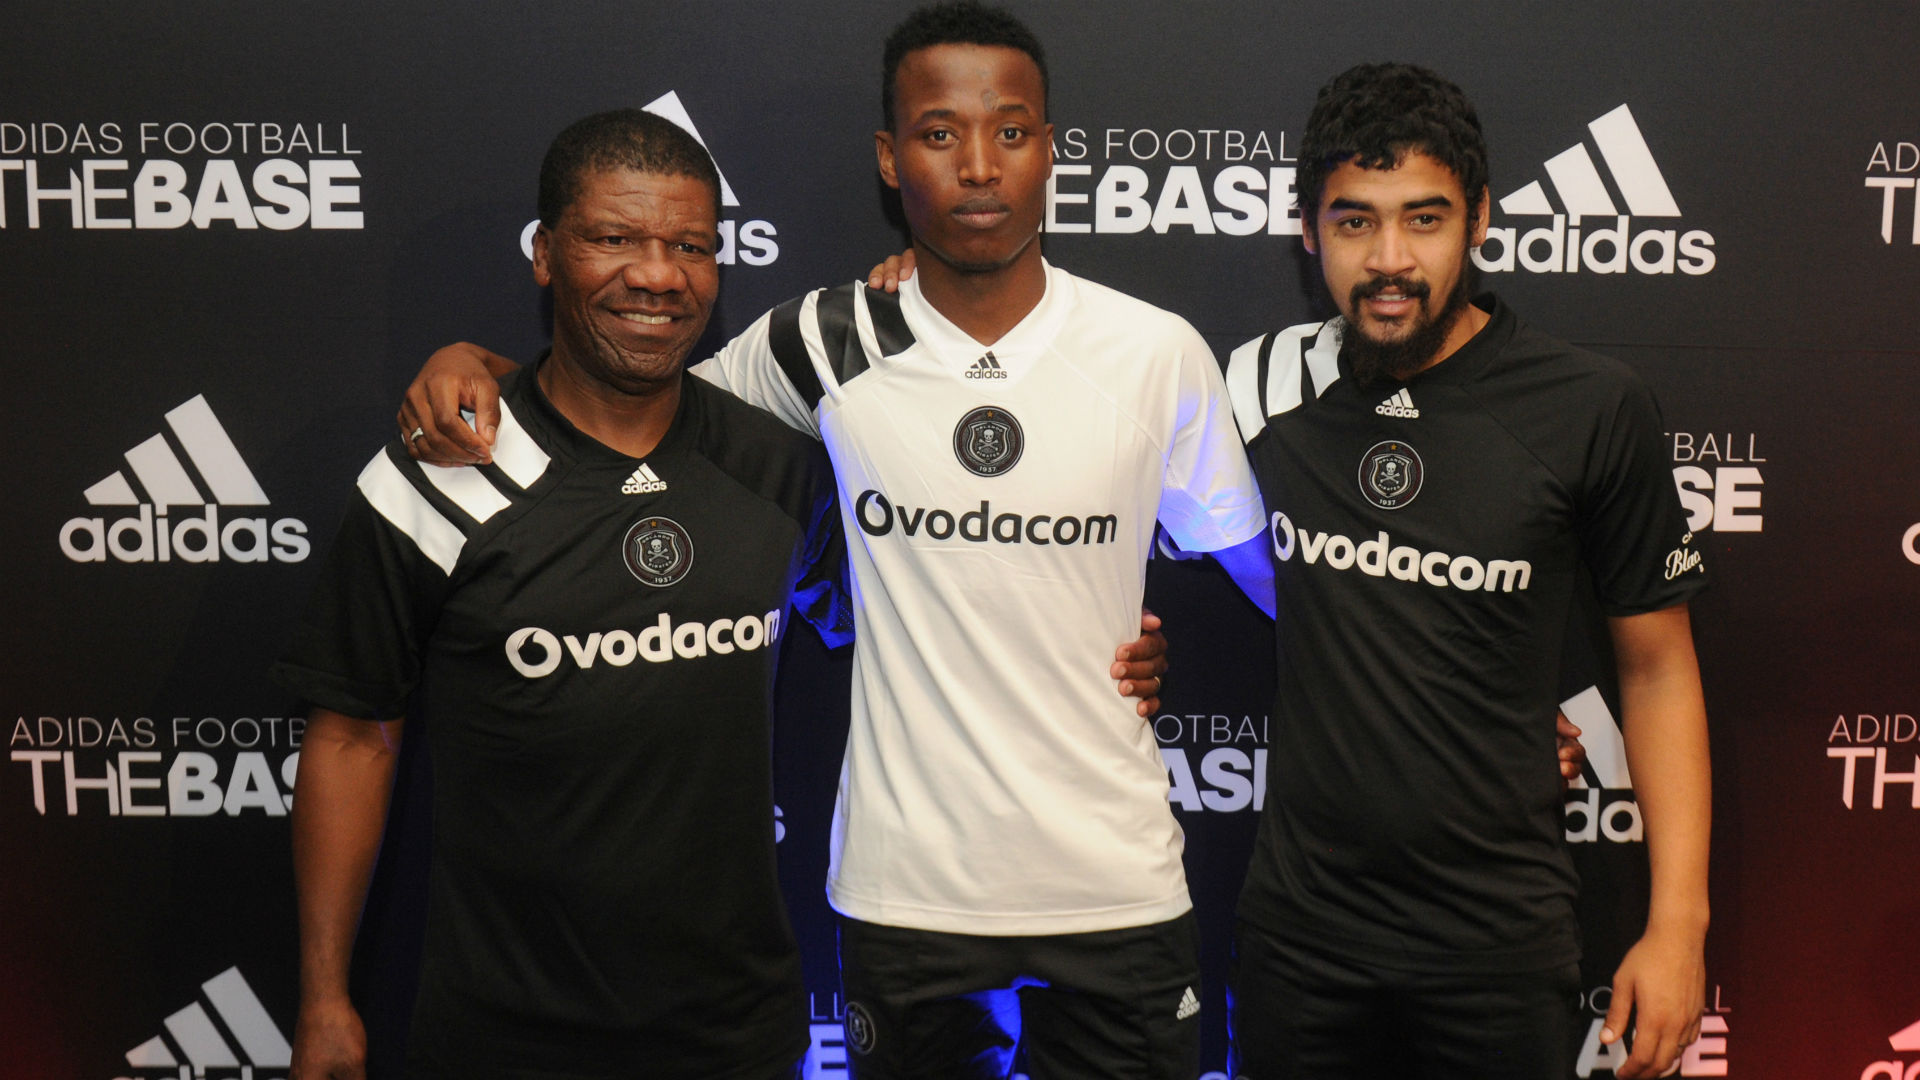 Orlando Pirates legend Jerry Skhosana with Thamsanqa Sangweni and Abbubakar Mobara